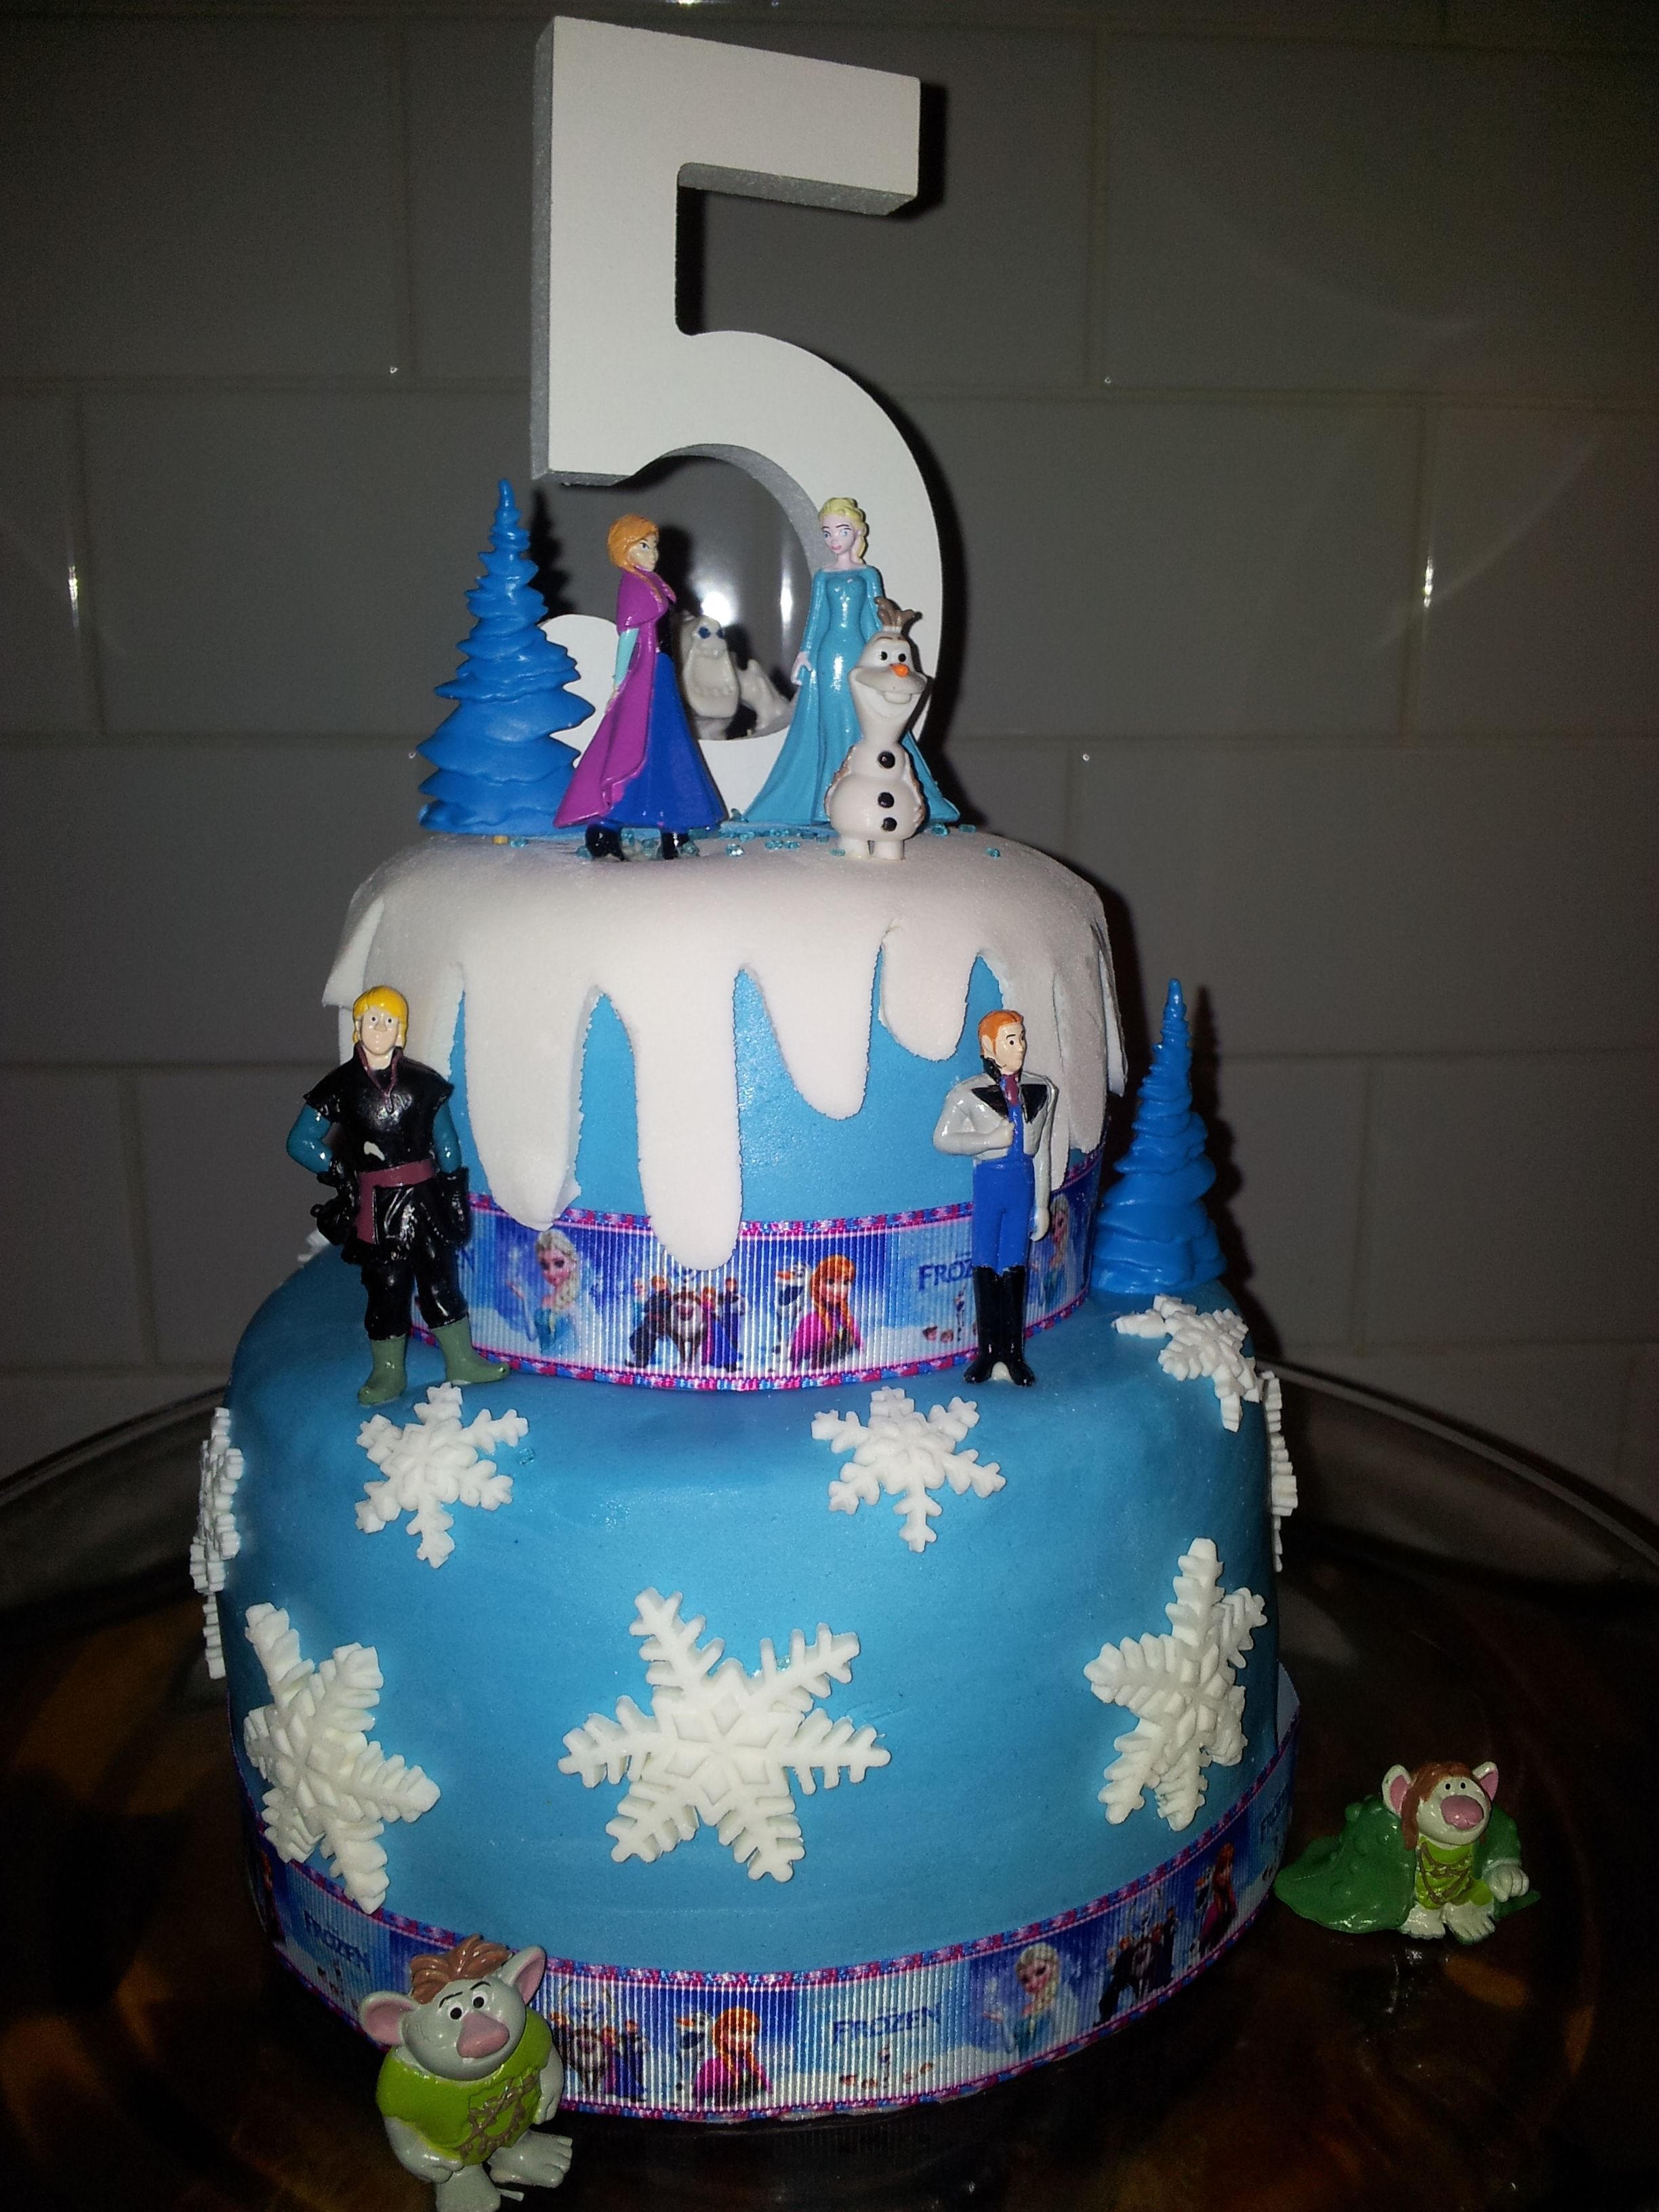 Disney Frozen Birthday cake made for my 5 year old made easy with